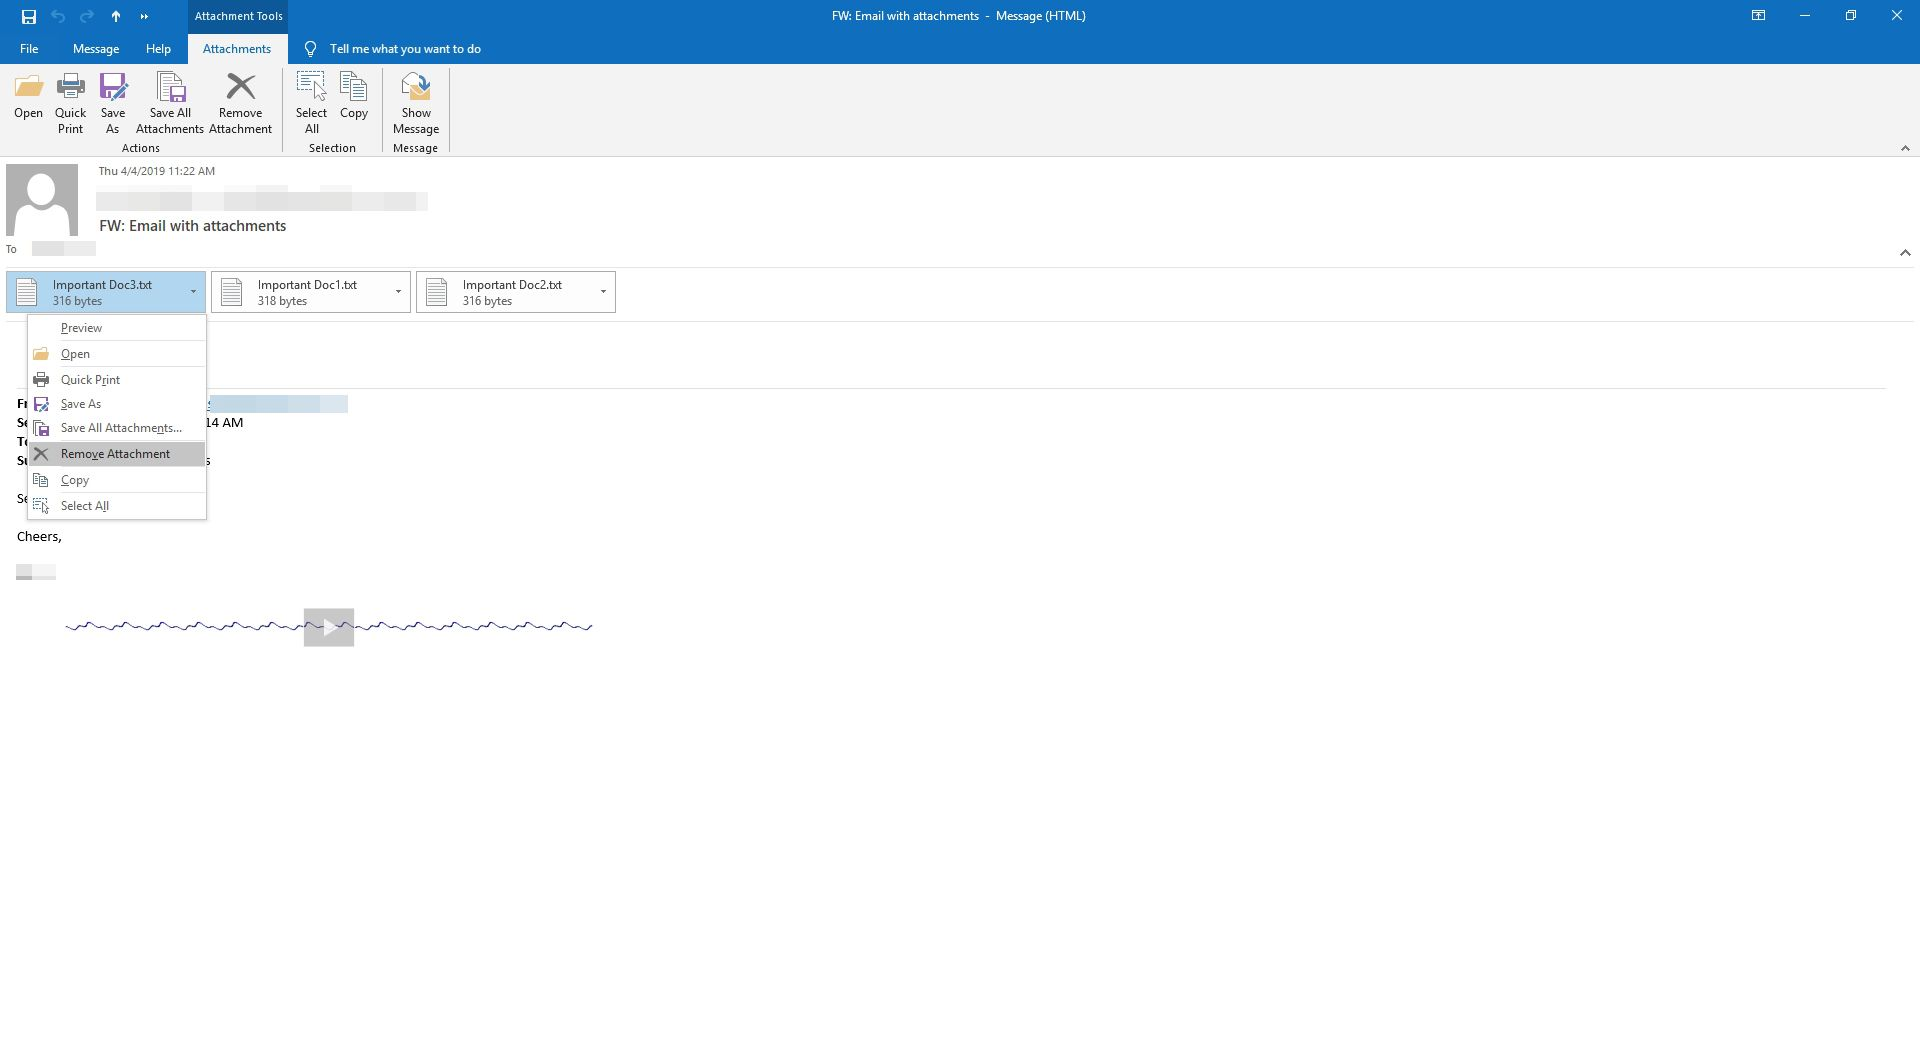 How to Remove Attachments From Messages in Outlook